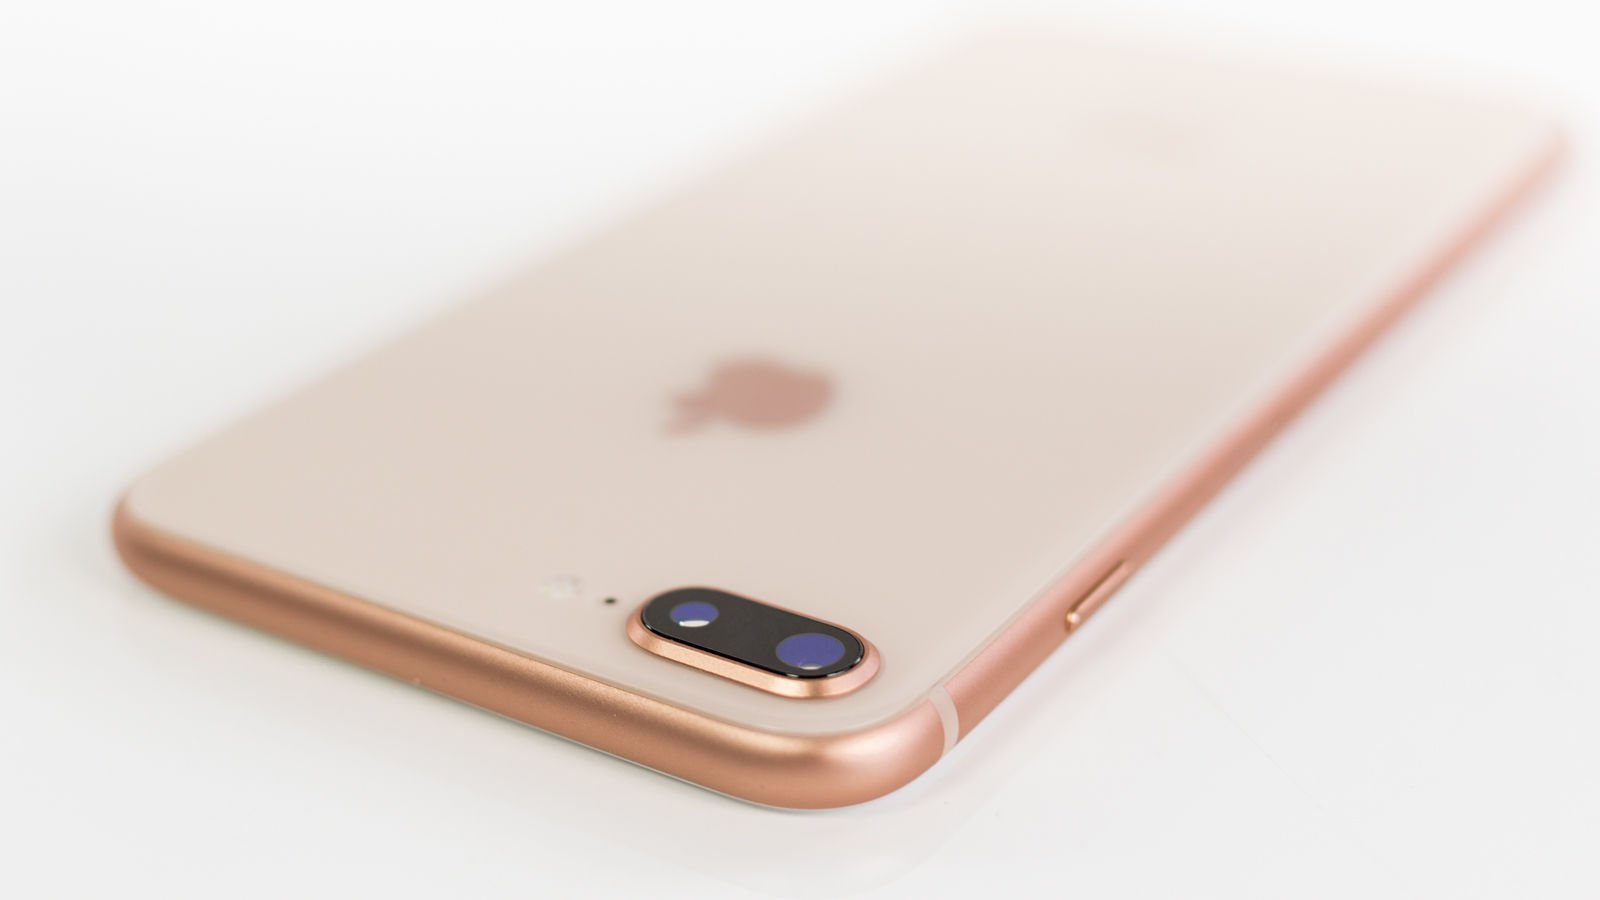 Scheda tecnica iPhone 8 Plus